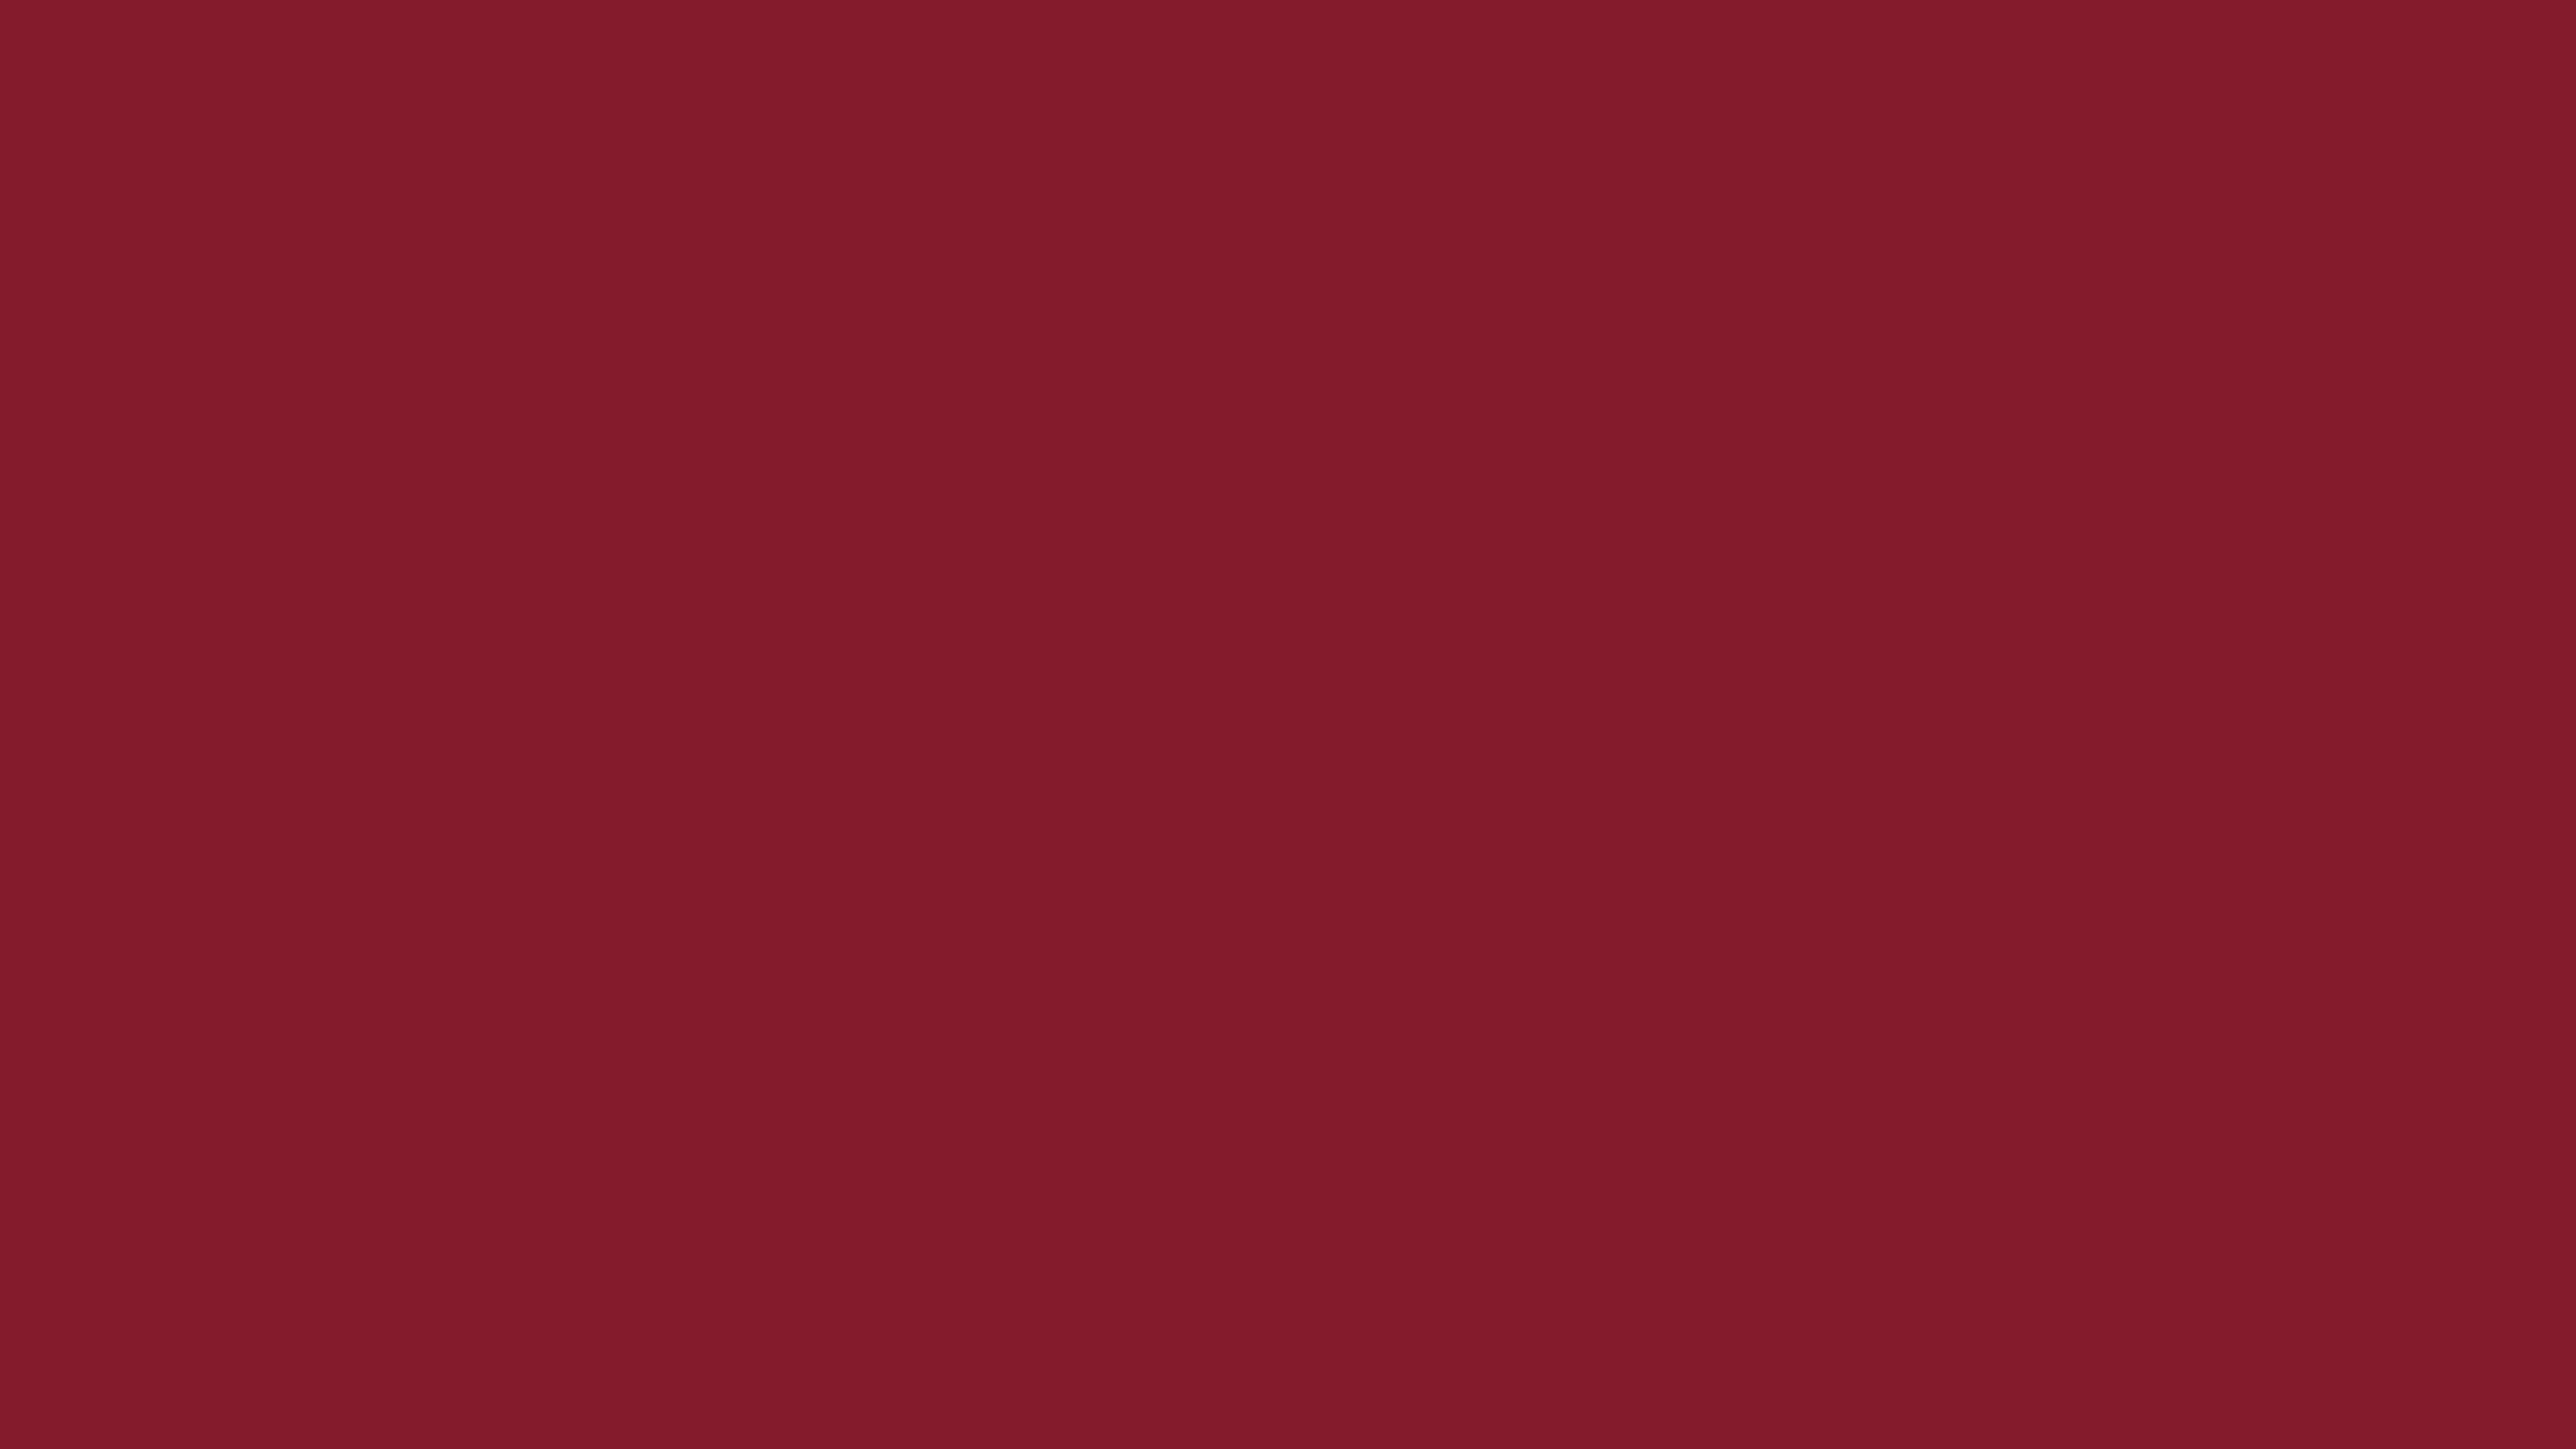 4096x2304 Antique Ruby Solid Color Background